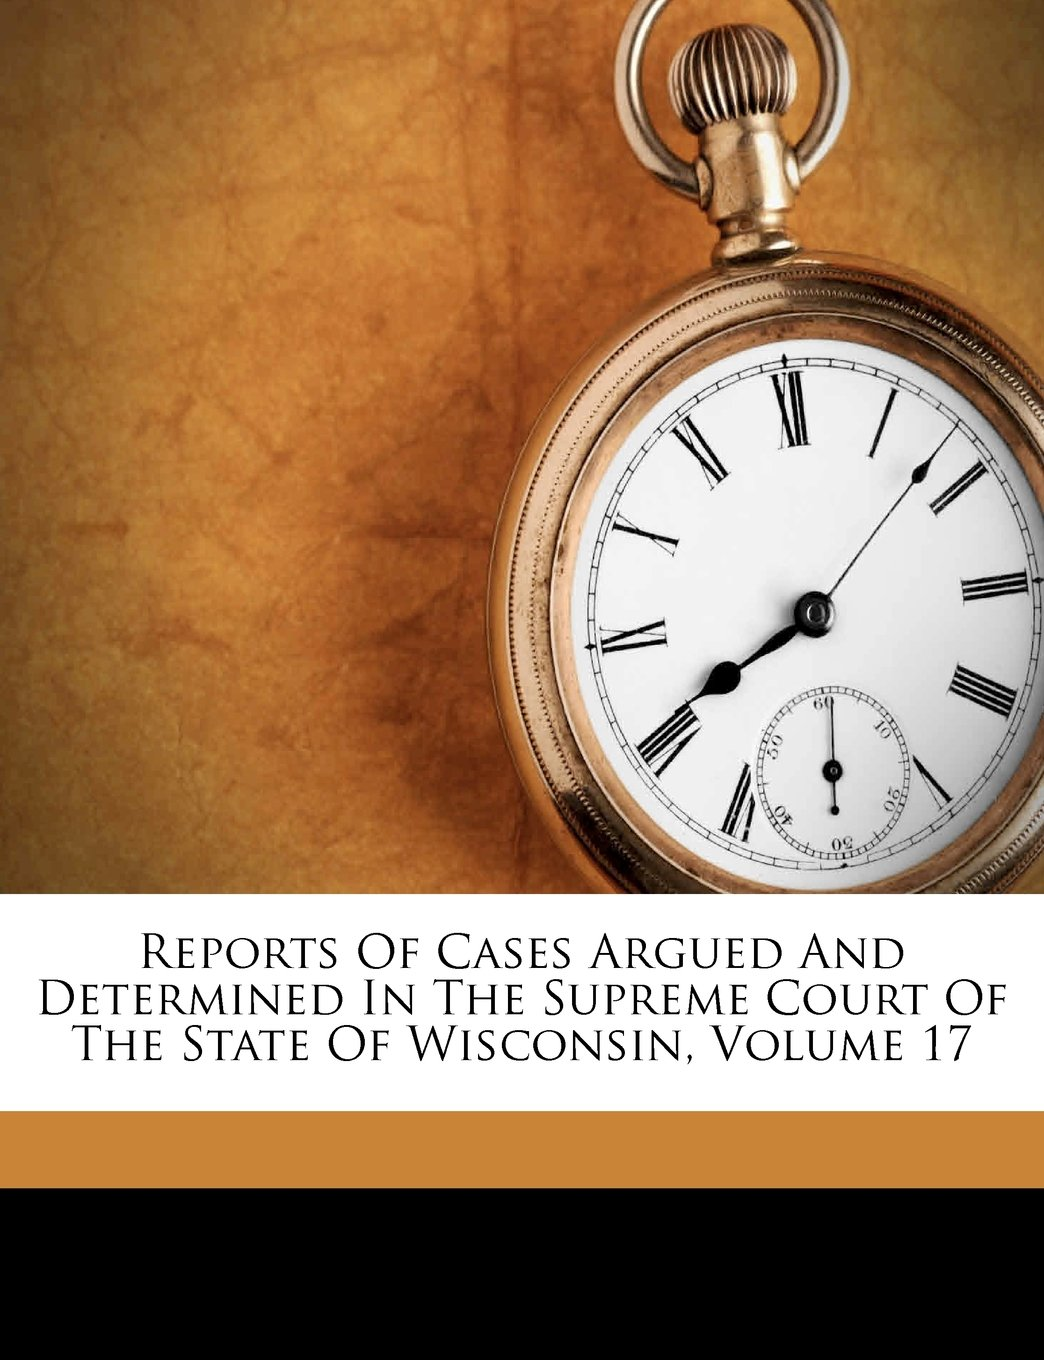 Reports Of Cases Argued And Determined In The Supreme Court Of The State Of Wisconsin, Volume 17 ebook